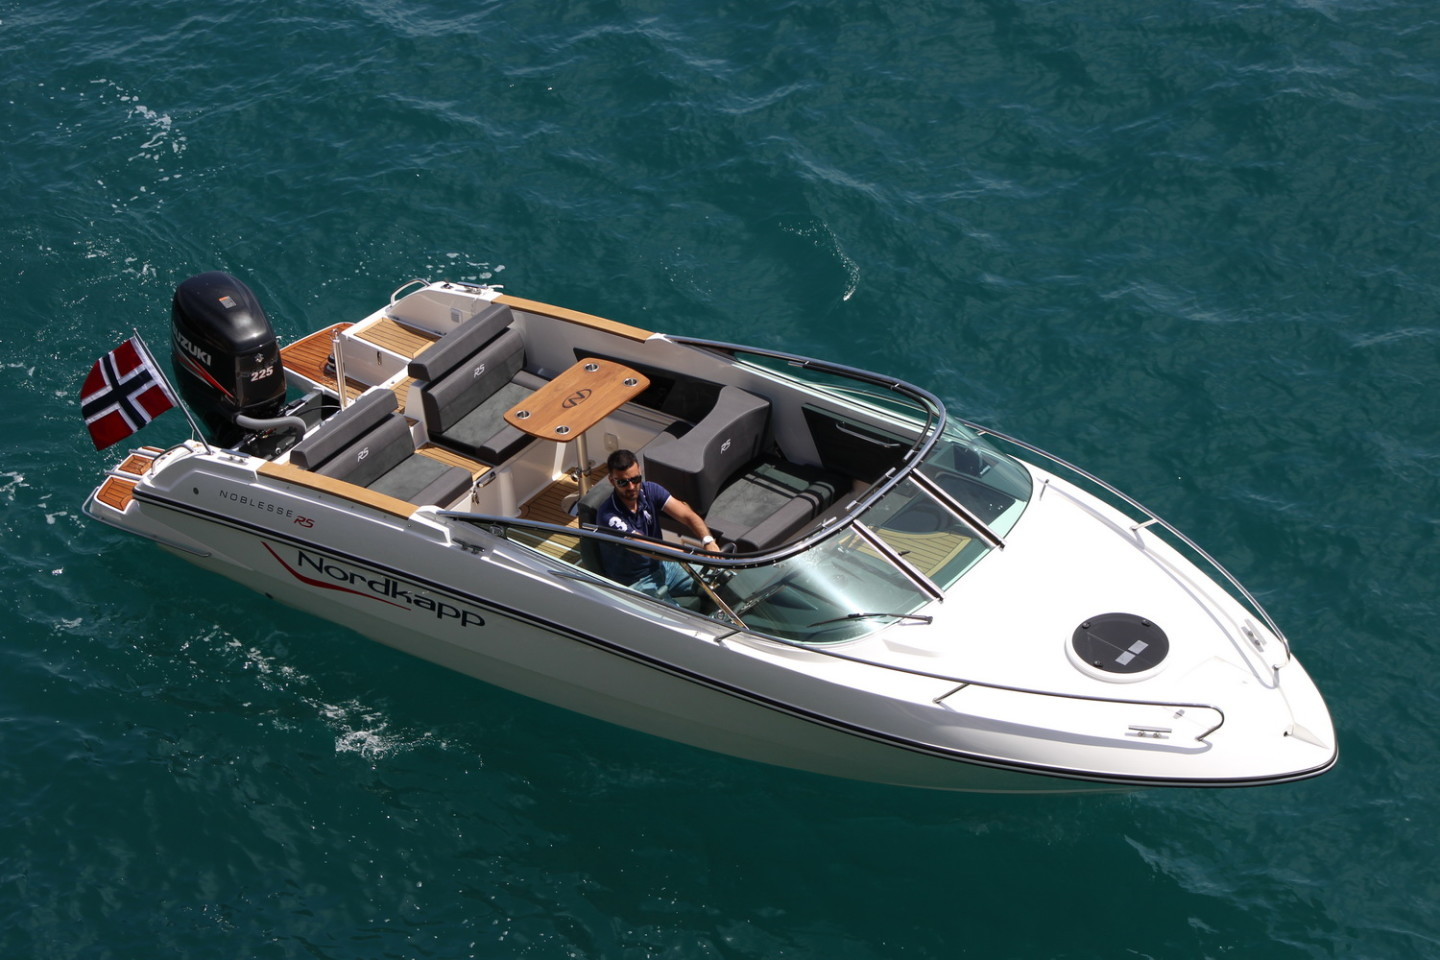 Nordkapp Noblesse 820 RS summer rent a boat for a day speedboat daily tour